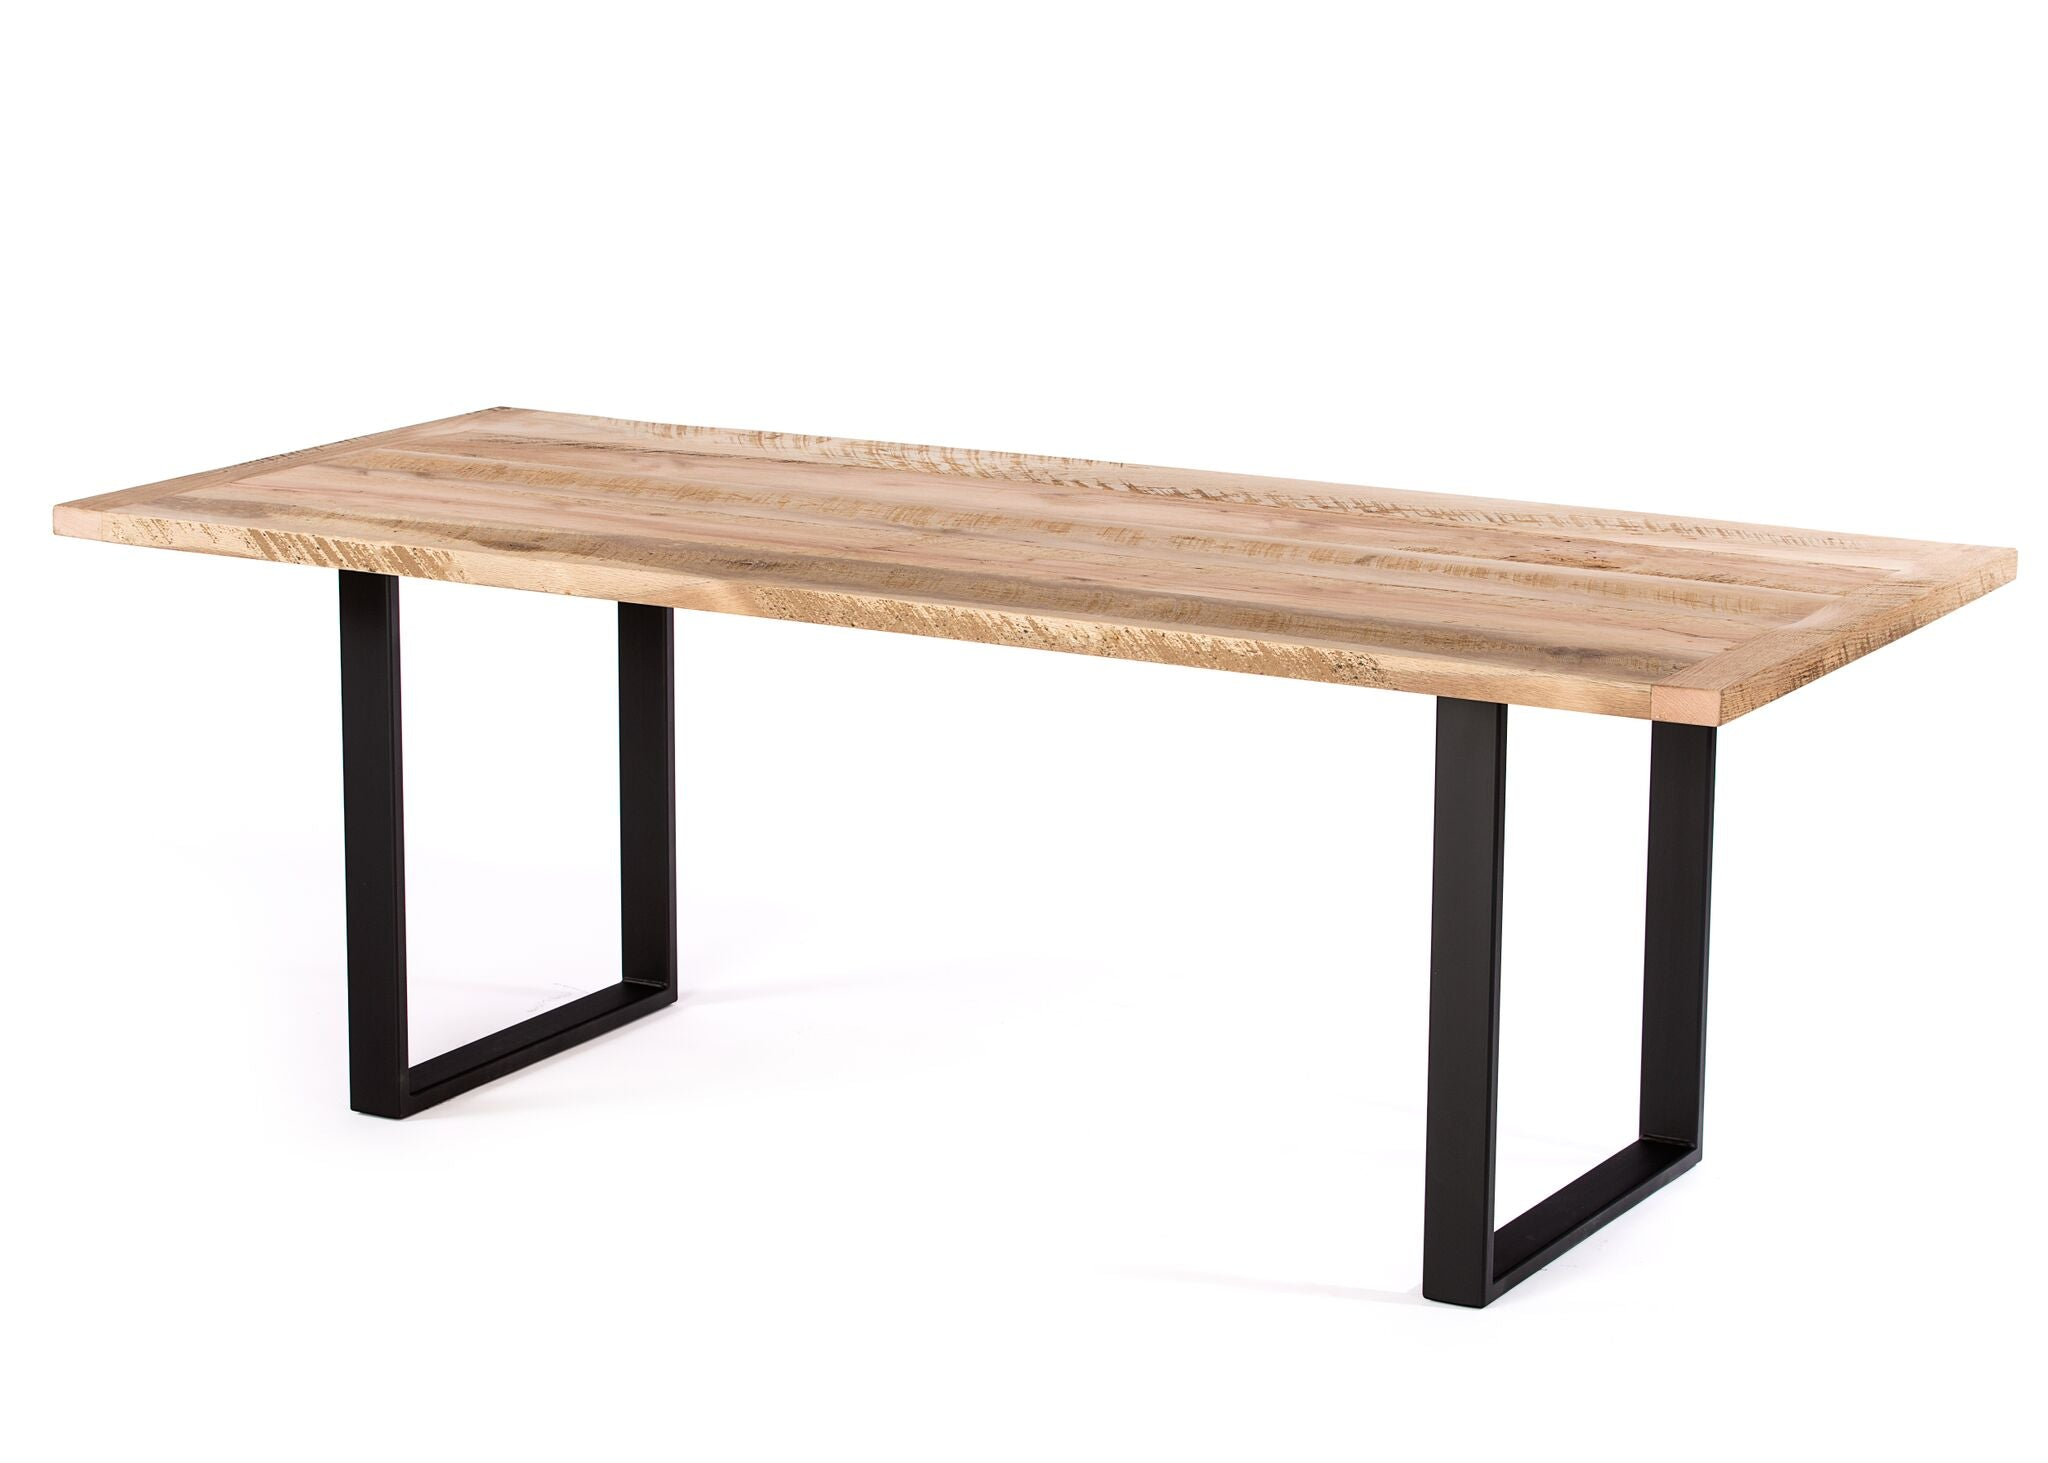 Wood Tables | Maddox Table | CLASSIC | Natural Ash | CUSTOM SIZE L 60 W 30 H 29 |